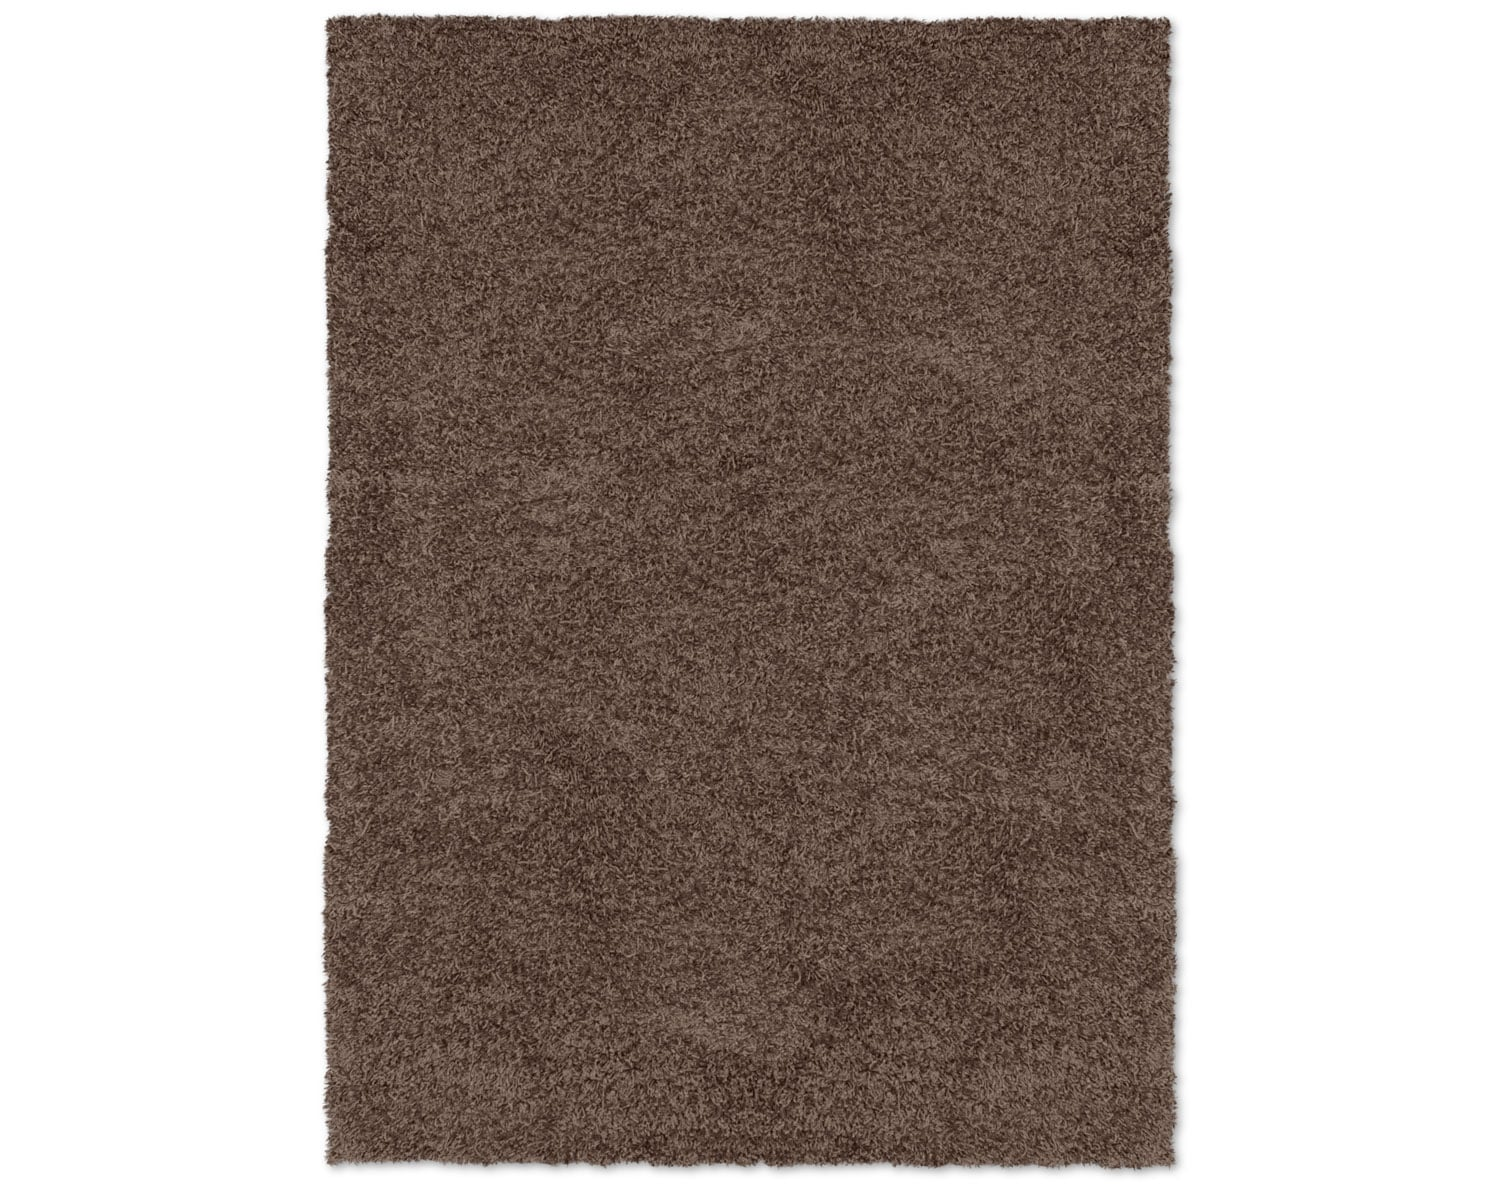 The Comfort Shag Collection - Chocolate